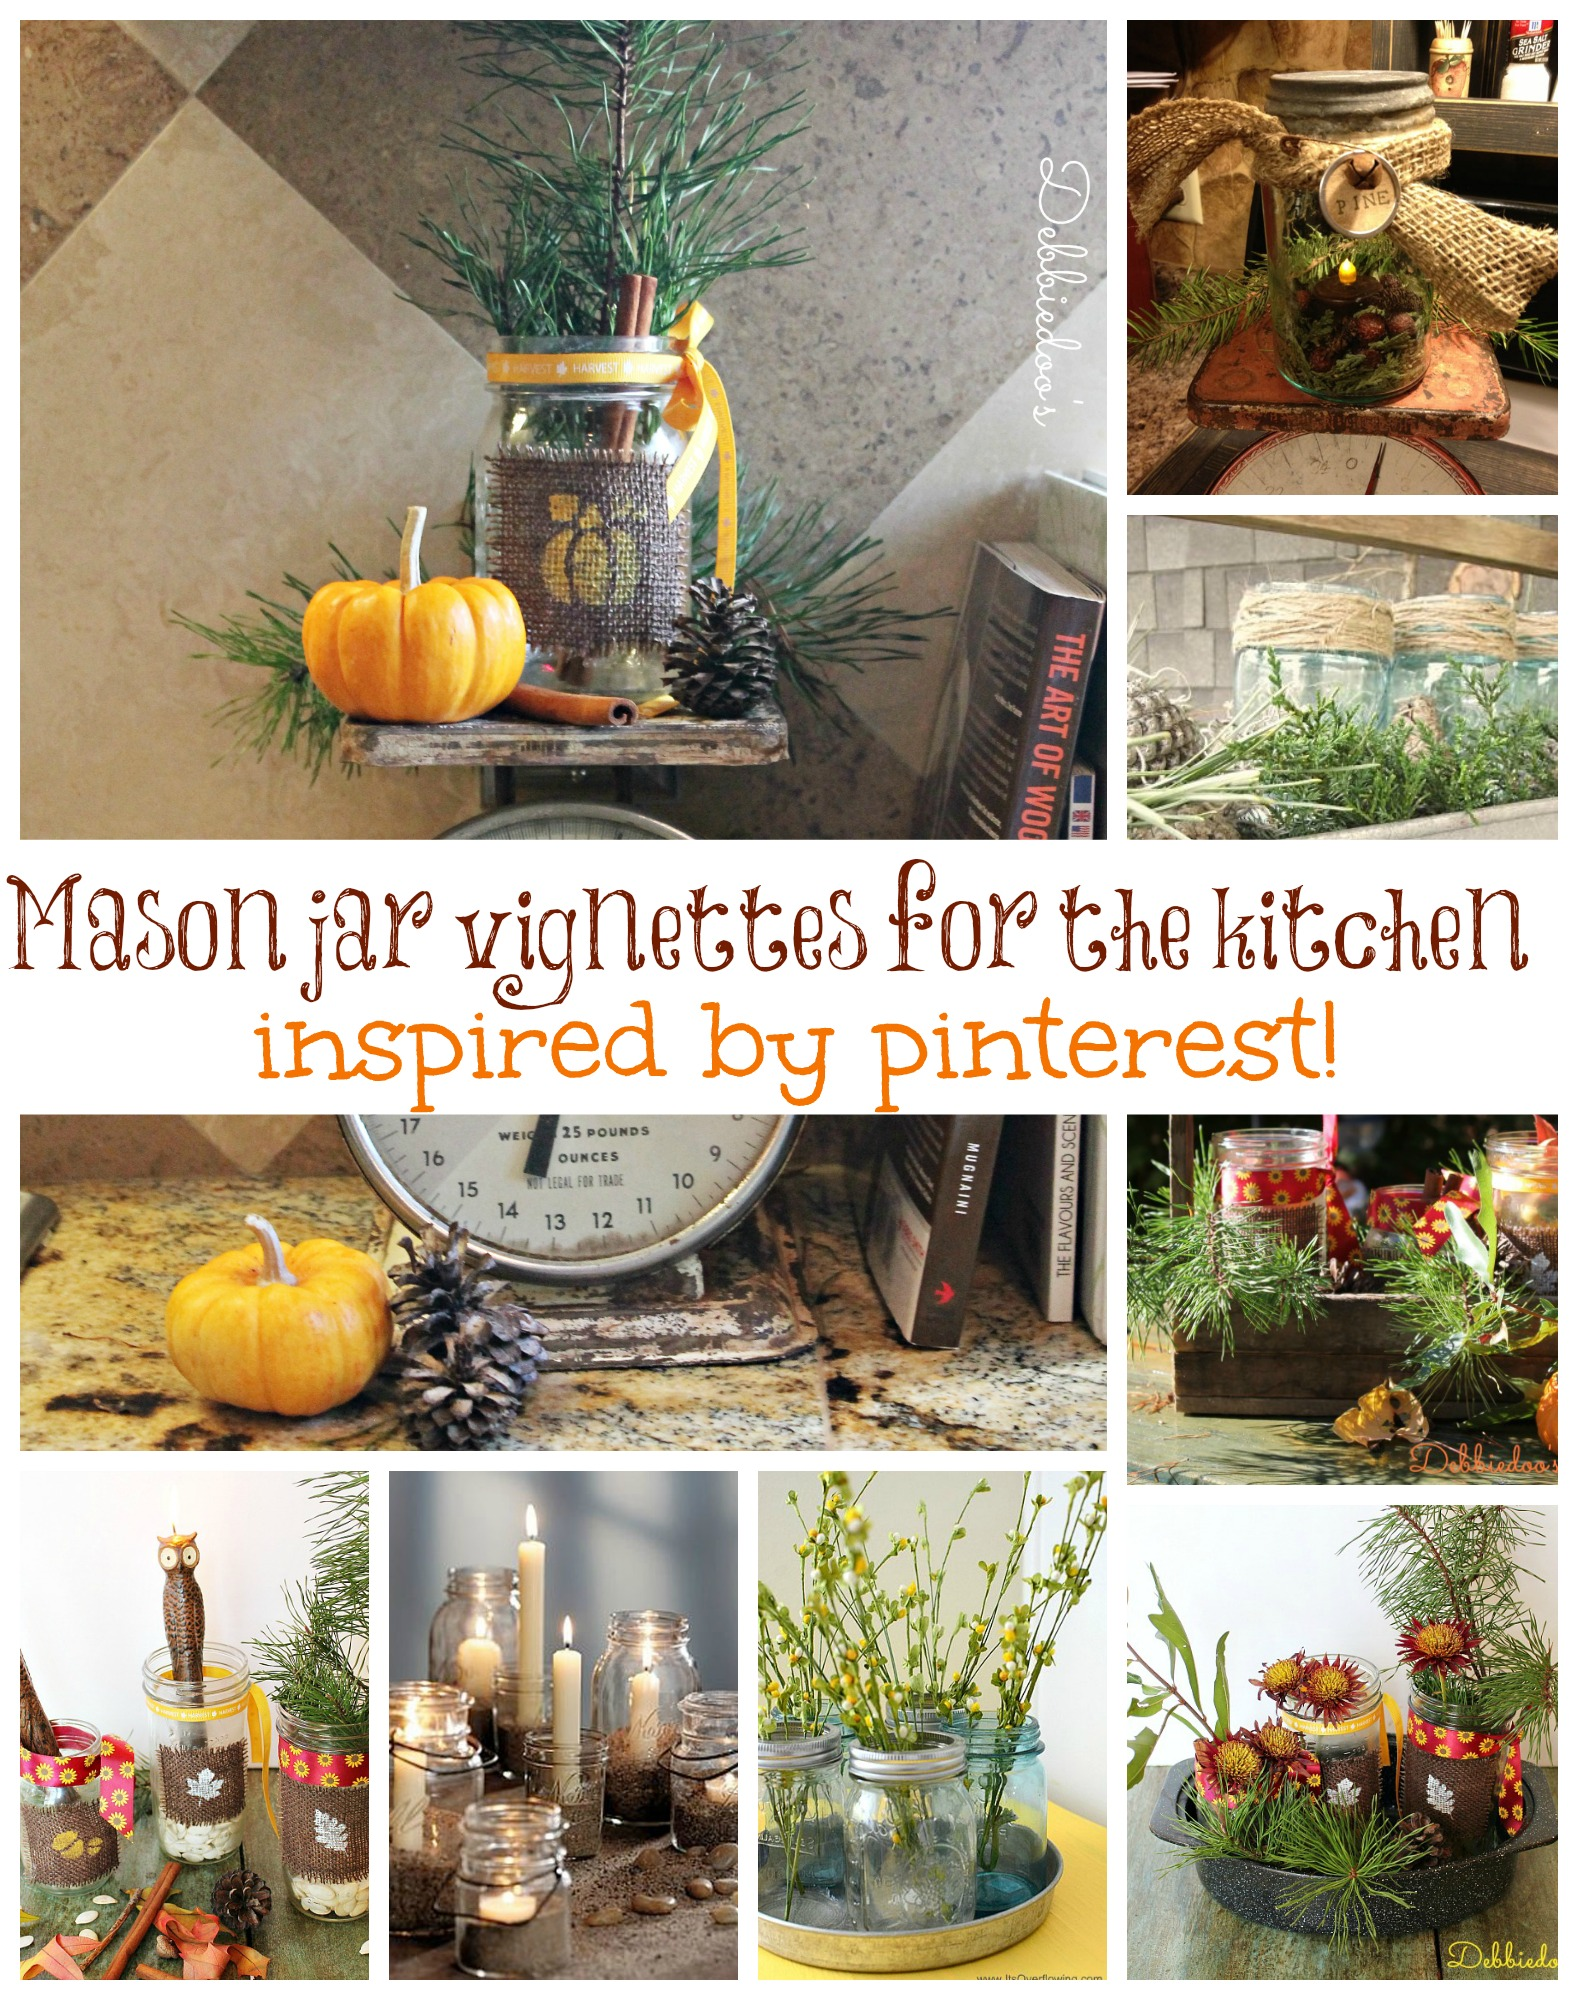 Mason jar vignettes inspired by pinterest pins